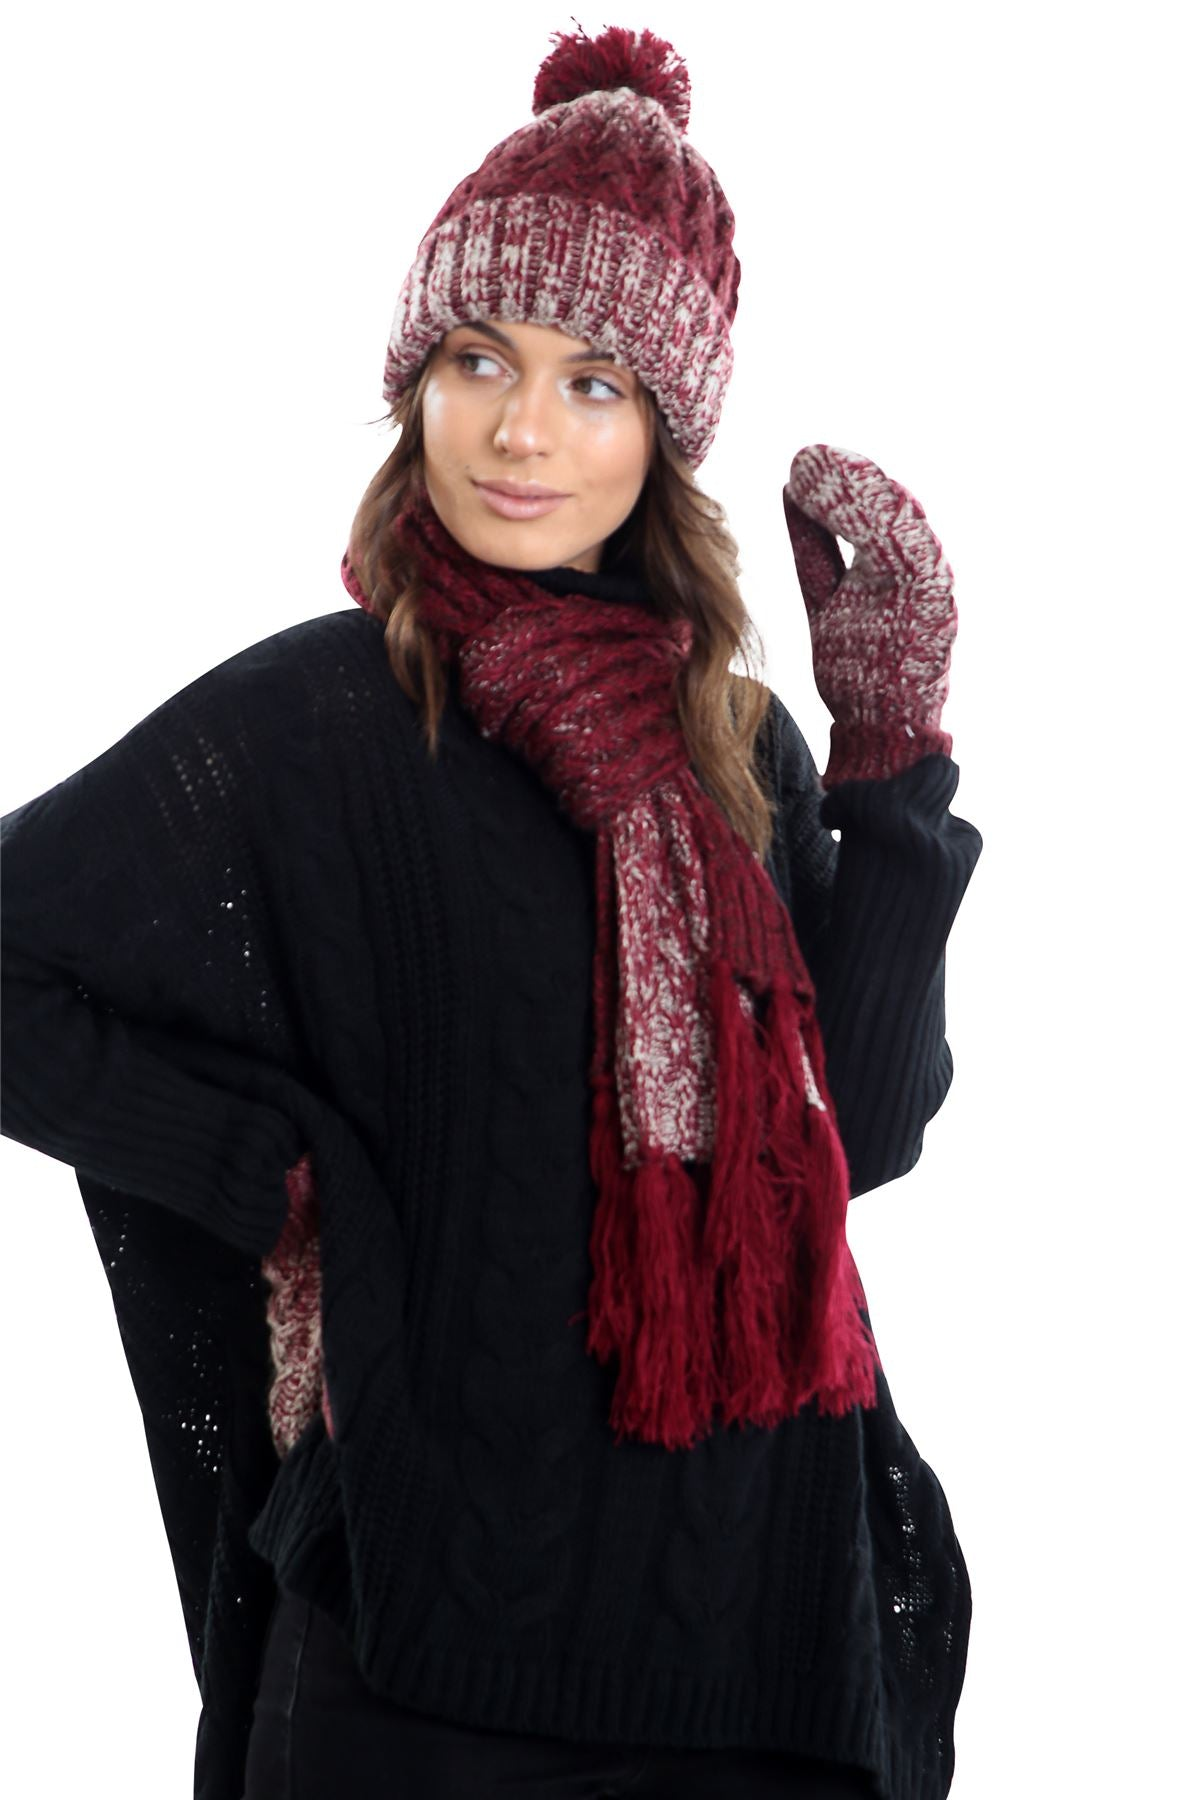 Womens LHTSF172 Wooly Thick knitted Hat, Scarf and Glove set -  Red & Grey